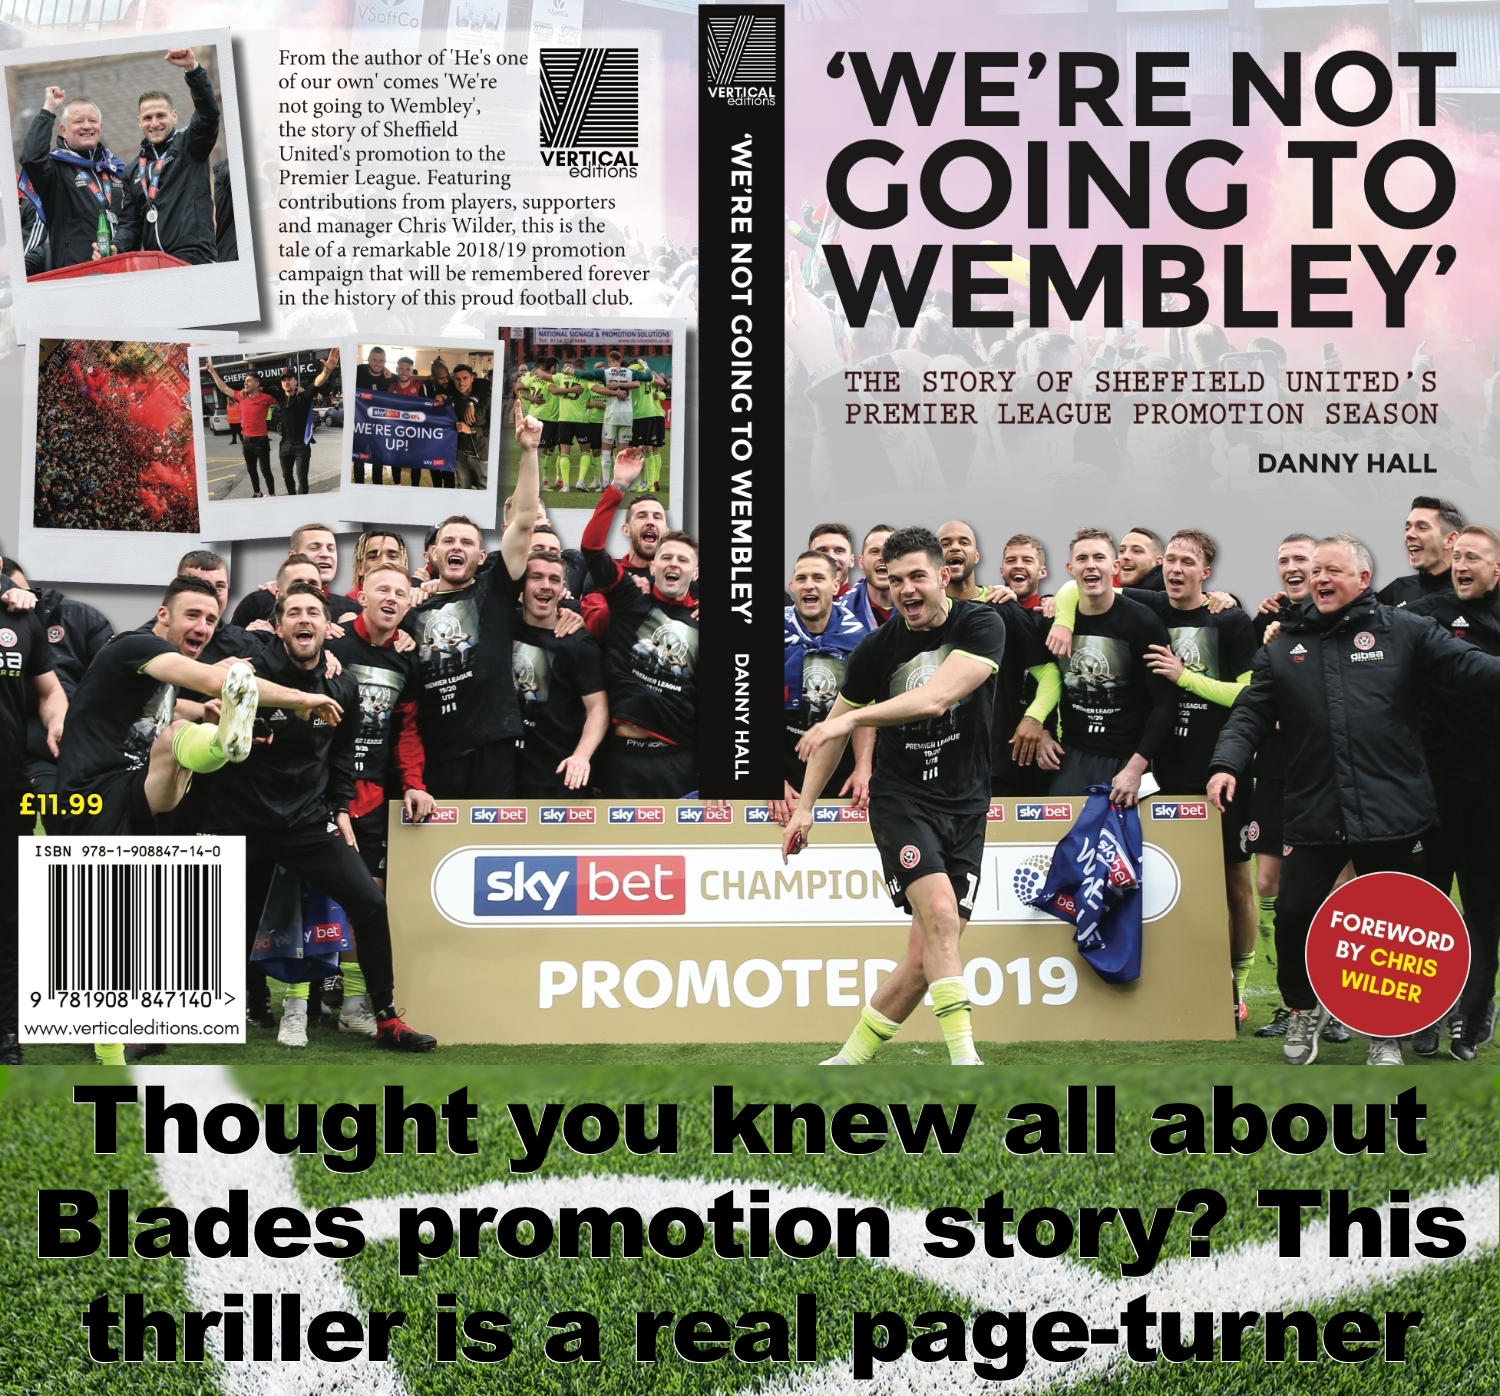 We're not going to Wembley, a page-turning thriller to surprise and entertain Sheffield United fans